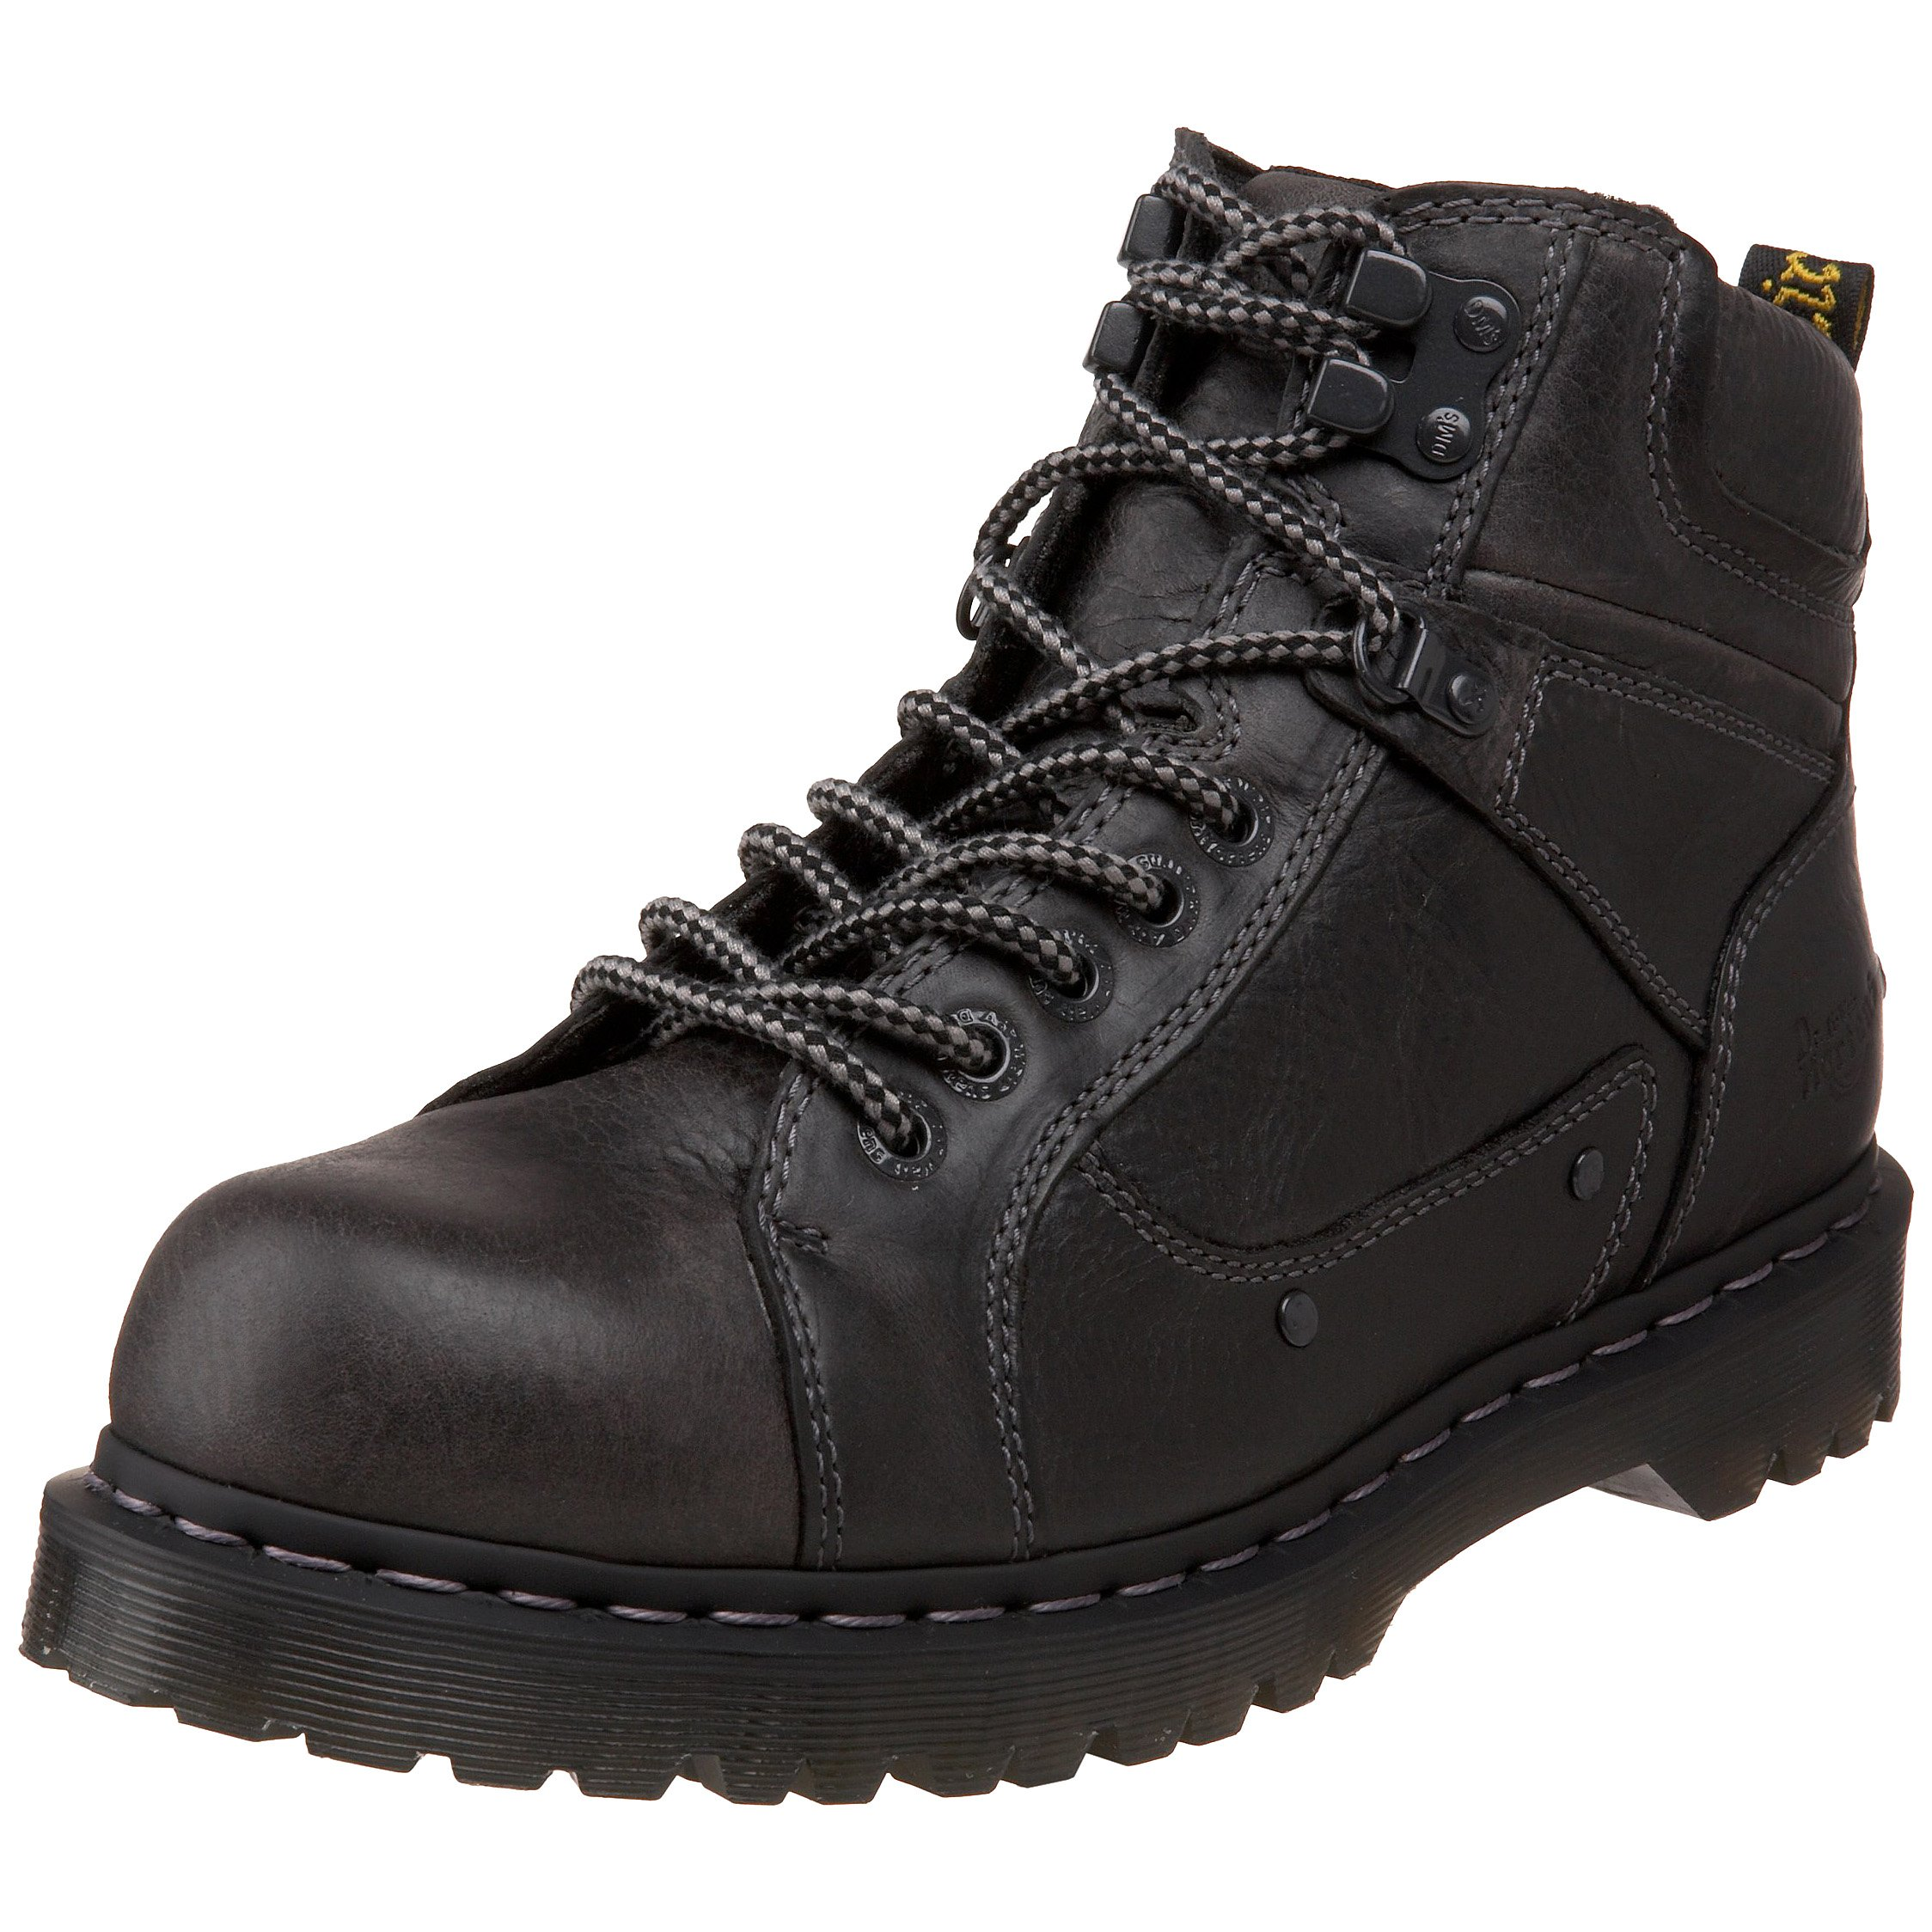 Dr. Martens Men's Diego Lace up Boot Dr. Martens Men's Fynn Western Boot Dr. Martens Bonny Chukka Boot Dr. Martens Men's Keith Shoe Dr. Martens Unisex-Adult Ranch Ns 7 Eye Boot Dr. Martens Men's Quincy 77 Fashion Boot